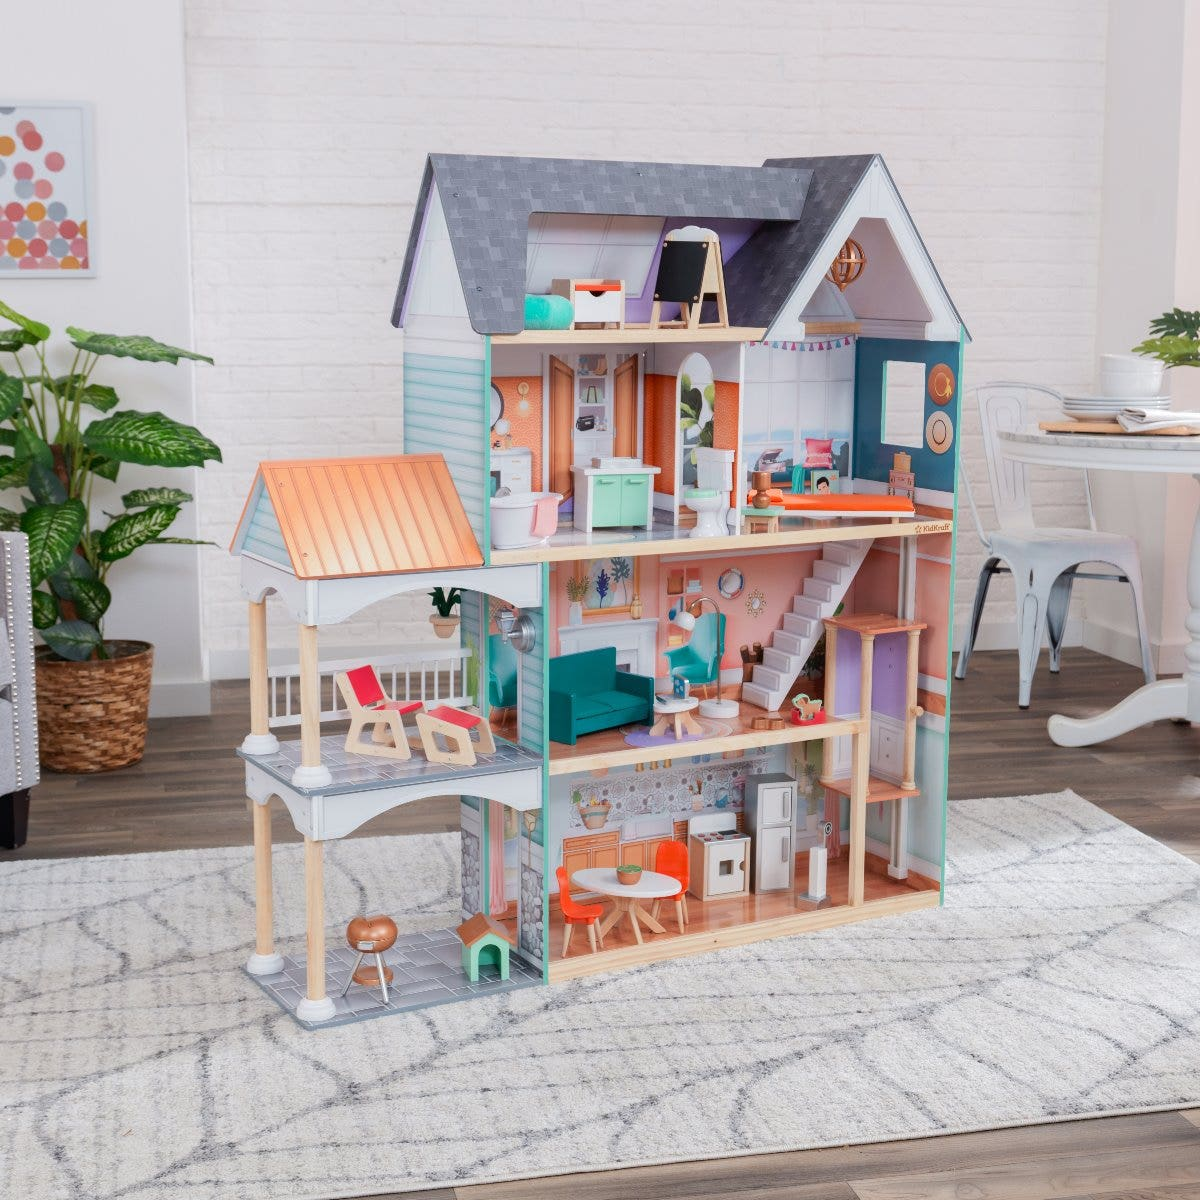 Four levels with six rooms of exciting play